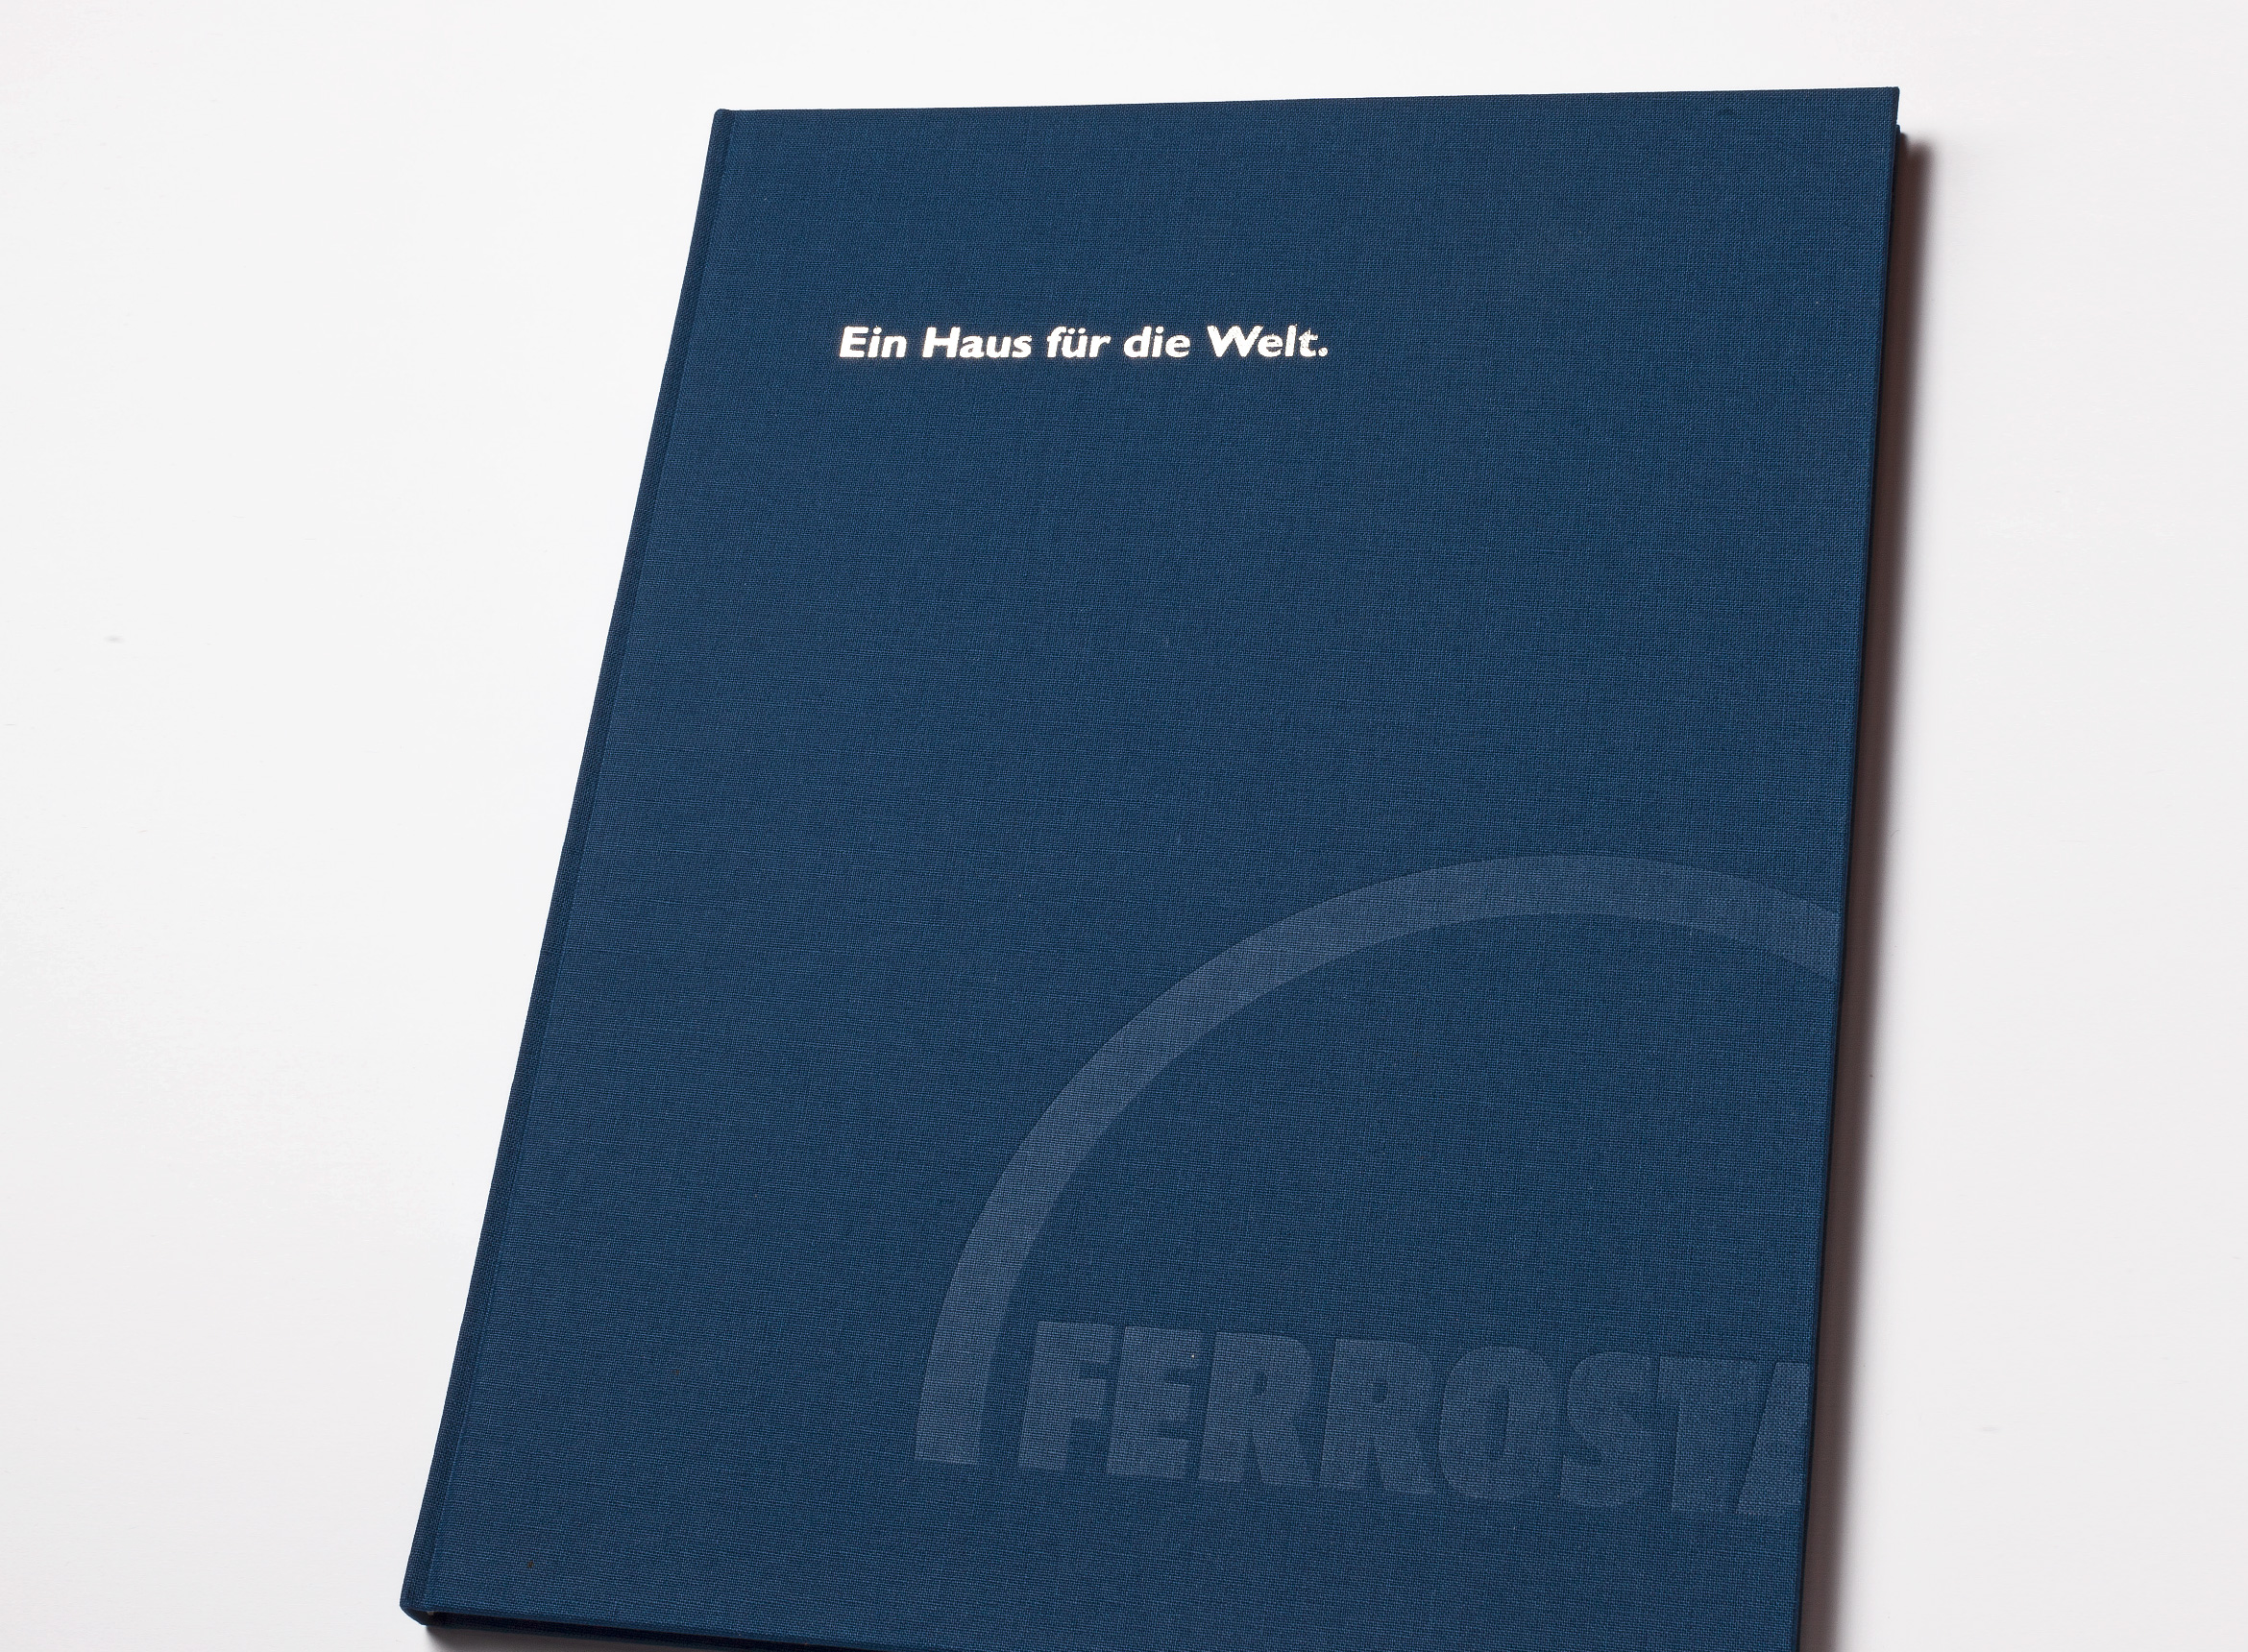 Ferrostal Baubuch – Volkswagen Group Forum